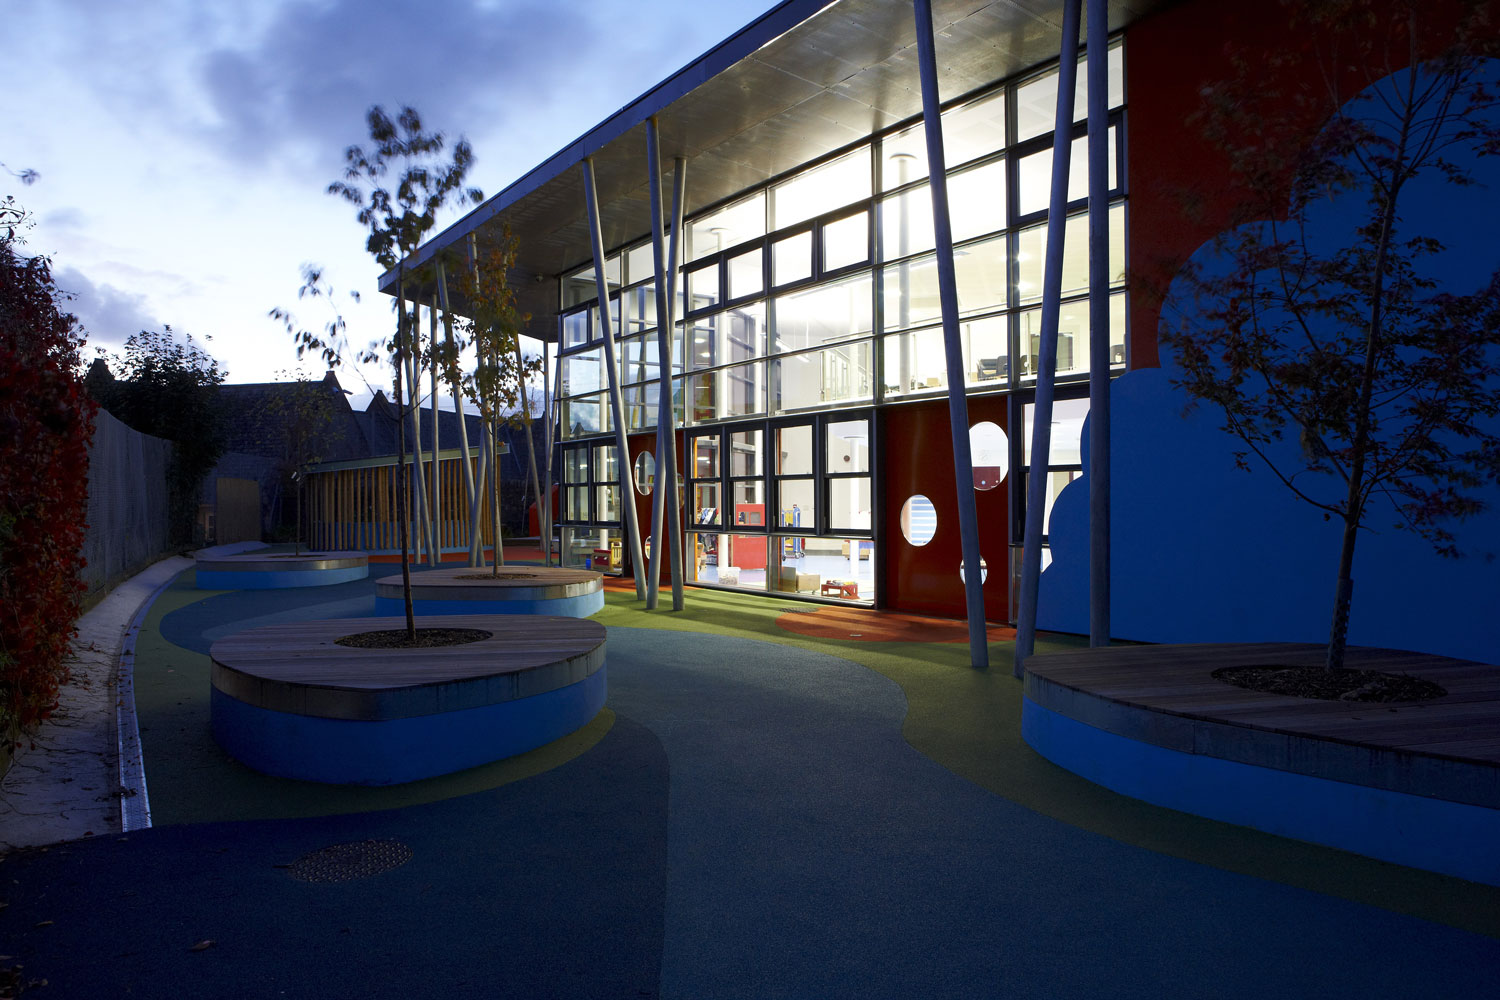 Ellacombe School Torquay at Play | Architectural Photographers UK